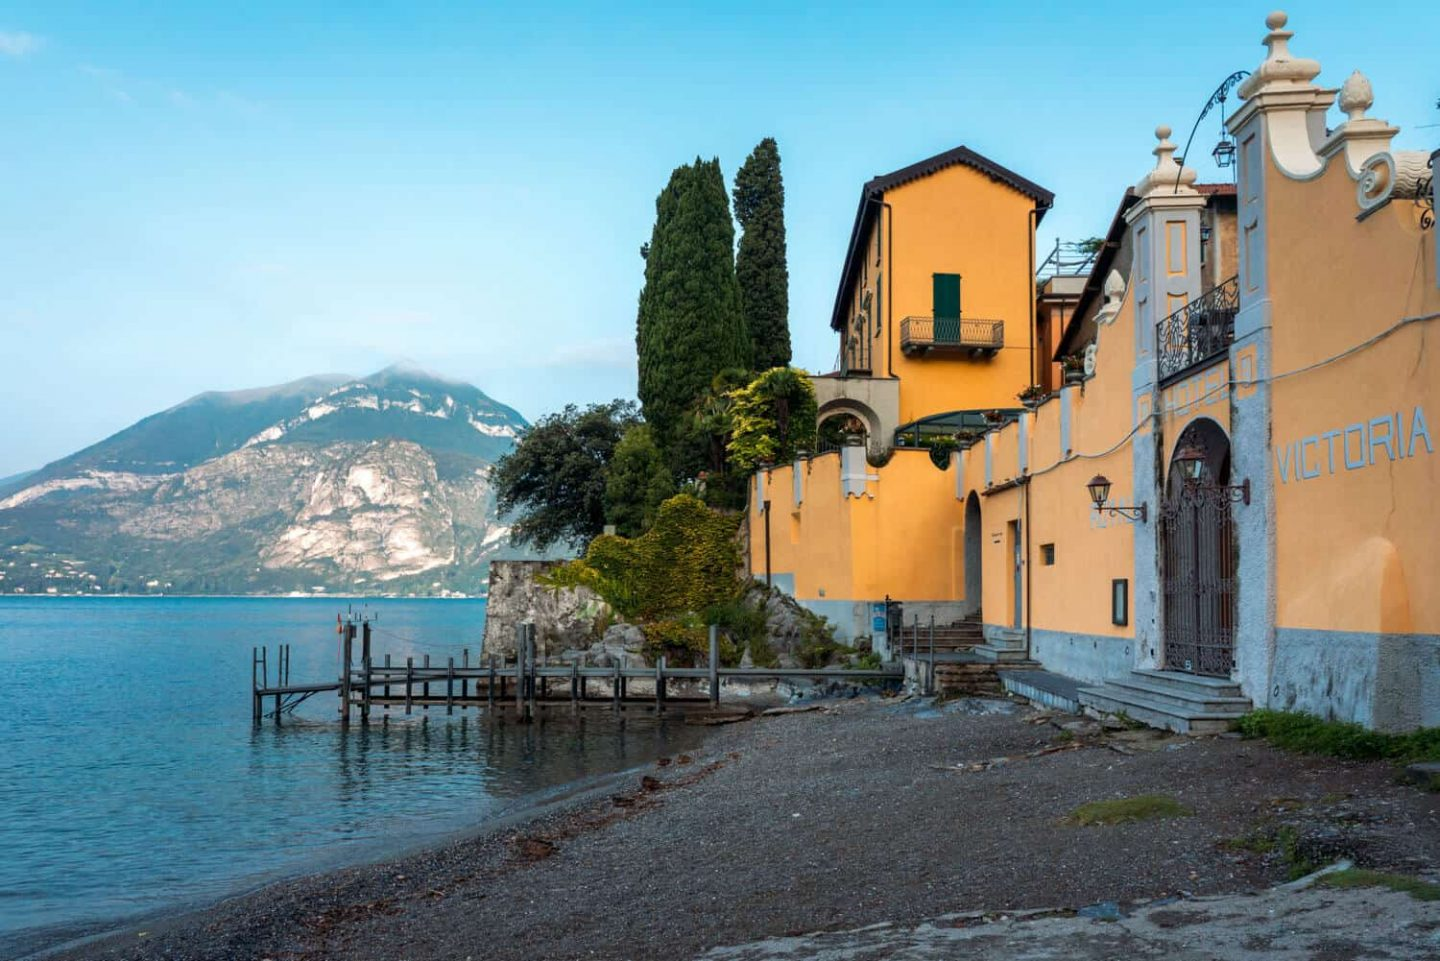 A pebble beach with a yellow building and mountain backdrop in Varenna  during a day trip from Milan to Lake Como